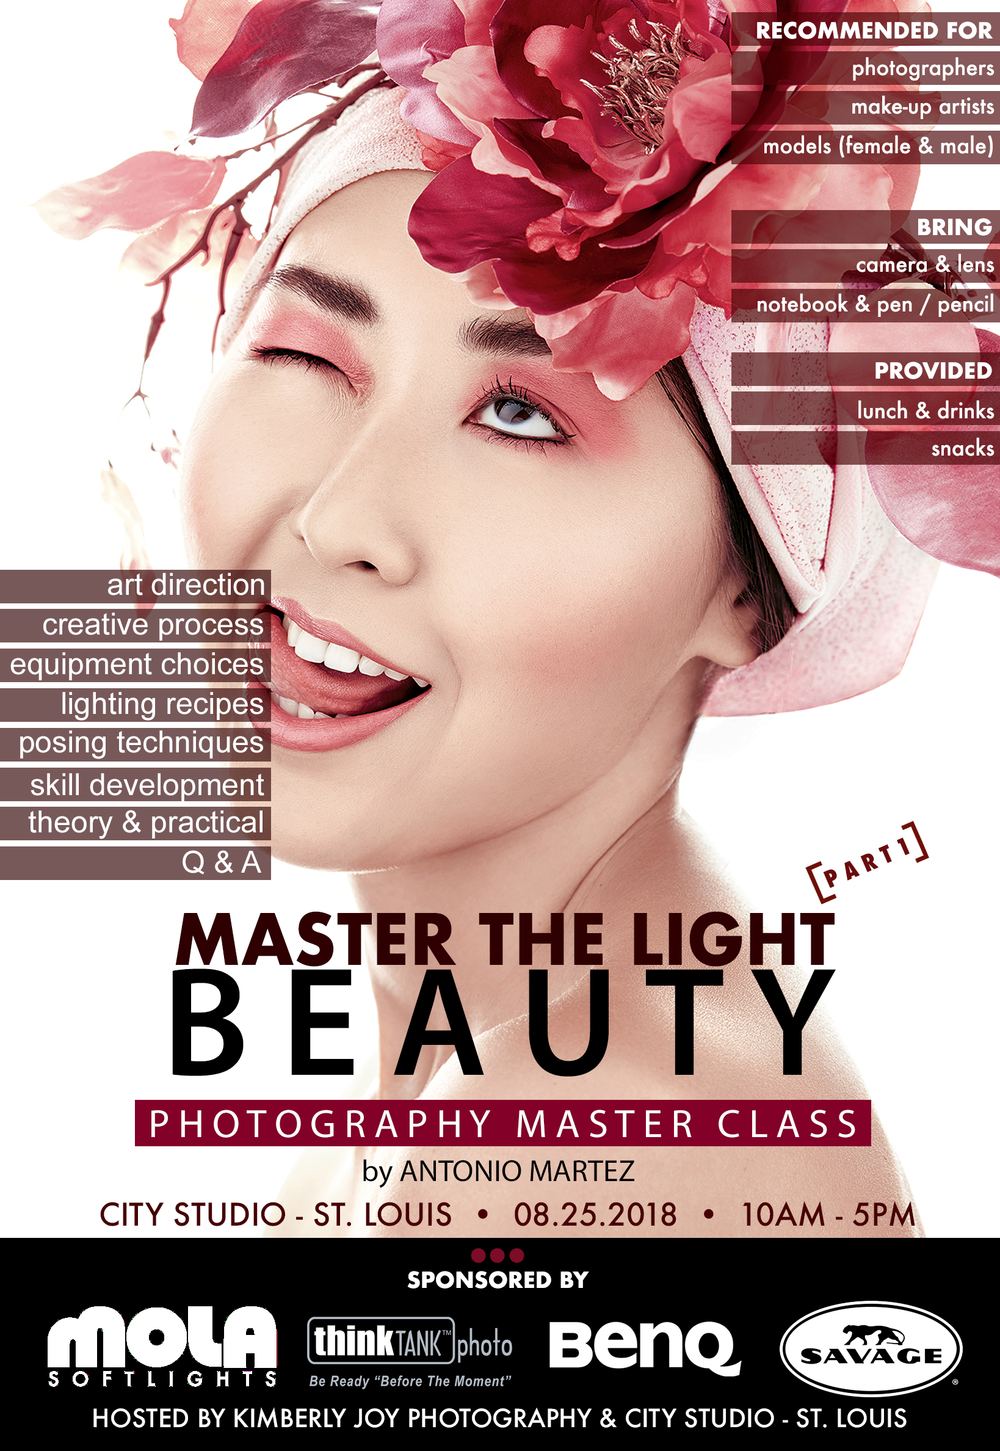 Master The Light Beauty Photography Workshop by Antonio Martez, NYC based Fashion & Beauty Photographer